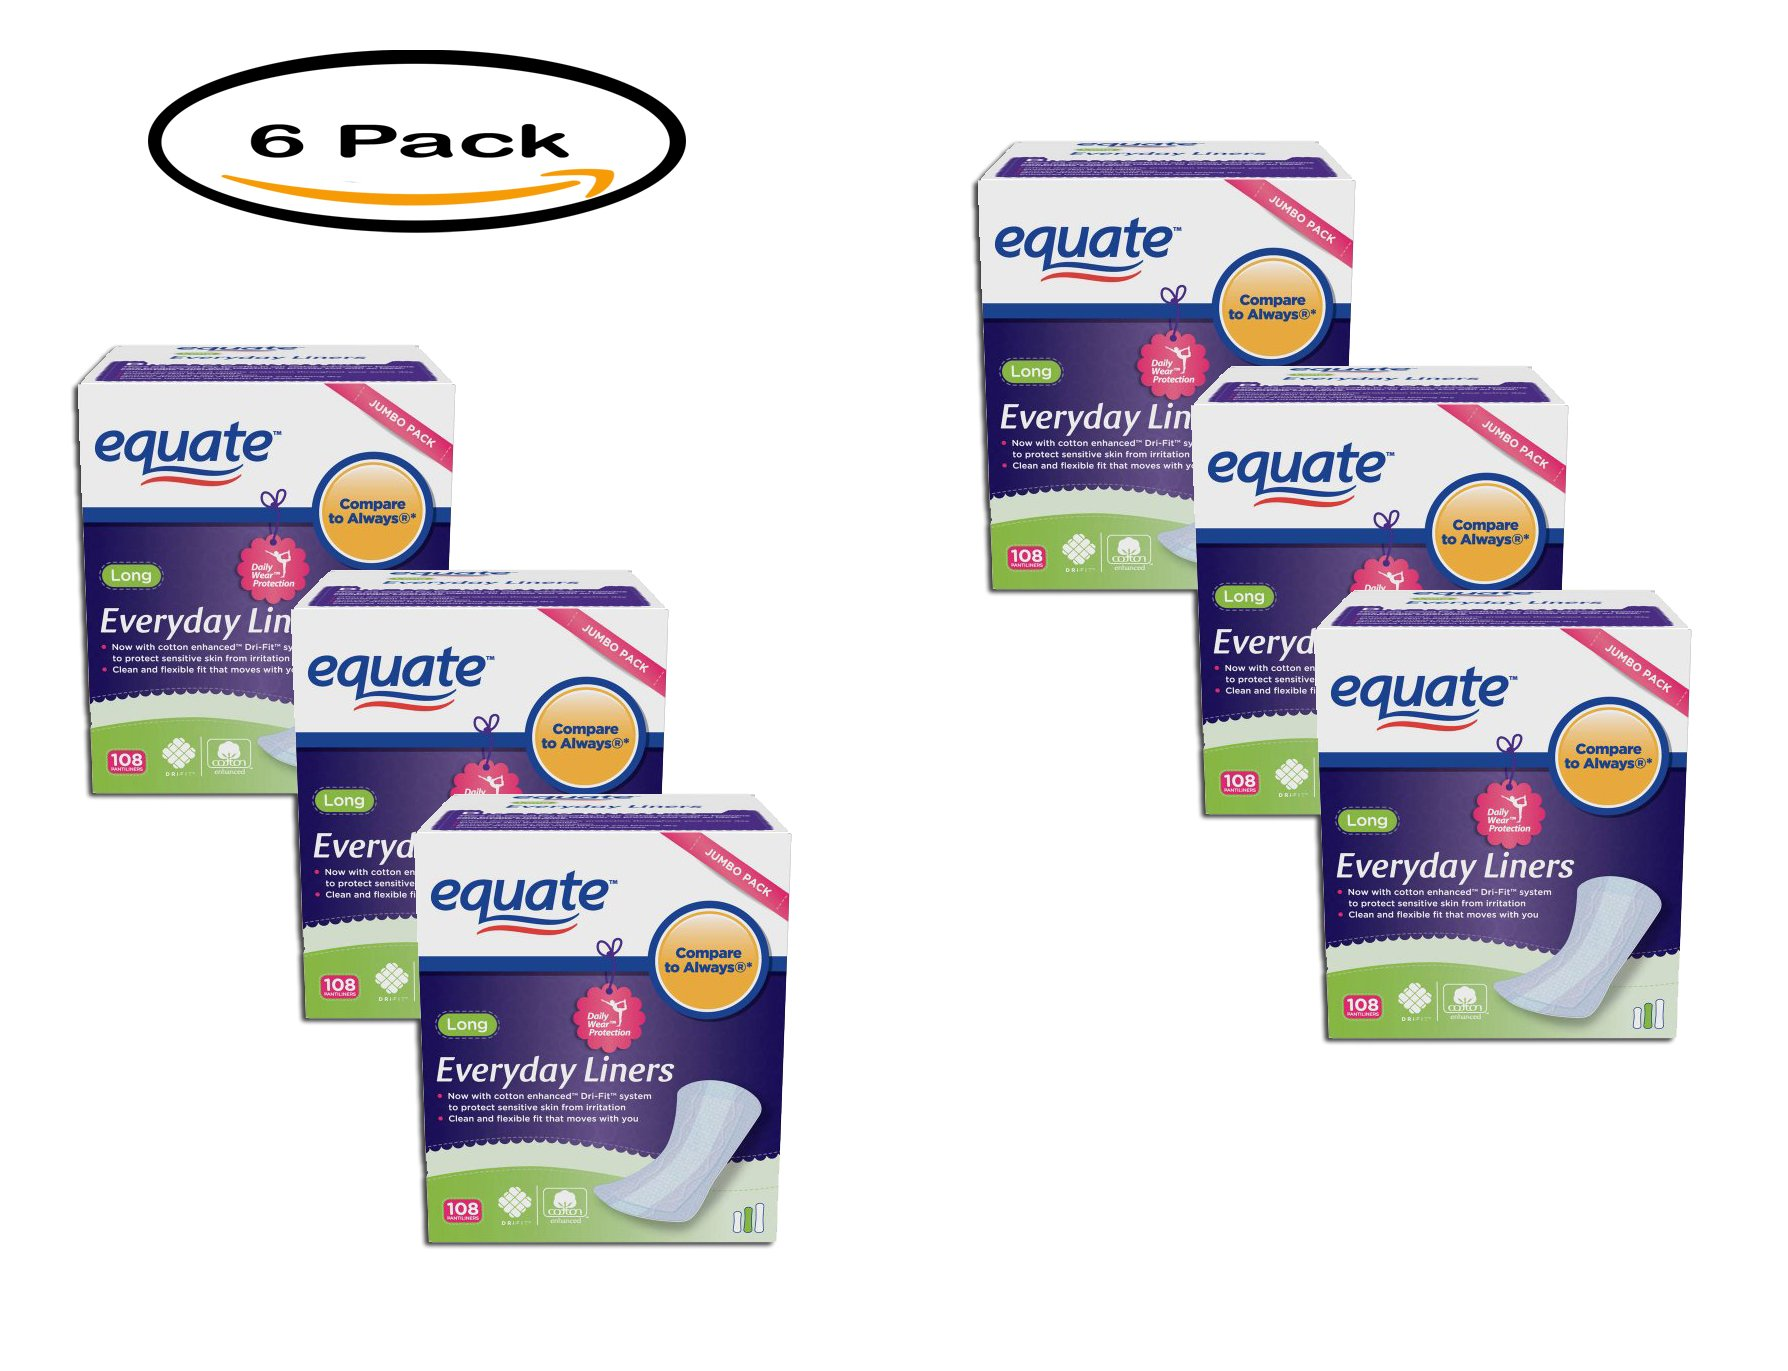 PACK OF 6 - Equate Everyday Pantiliners Long, 108 count